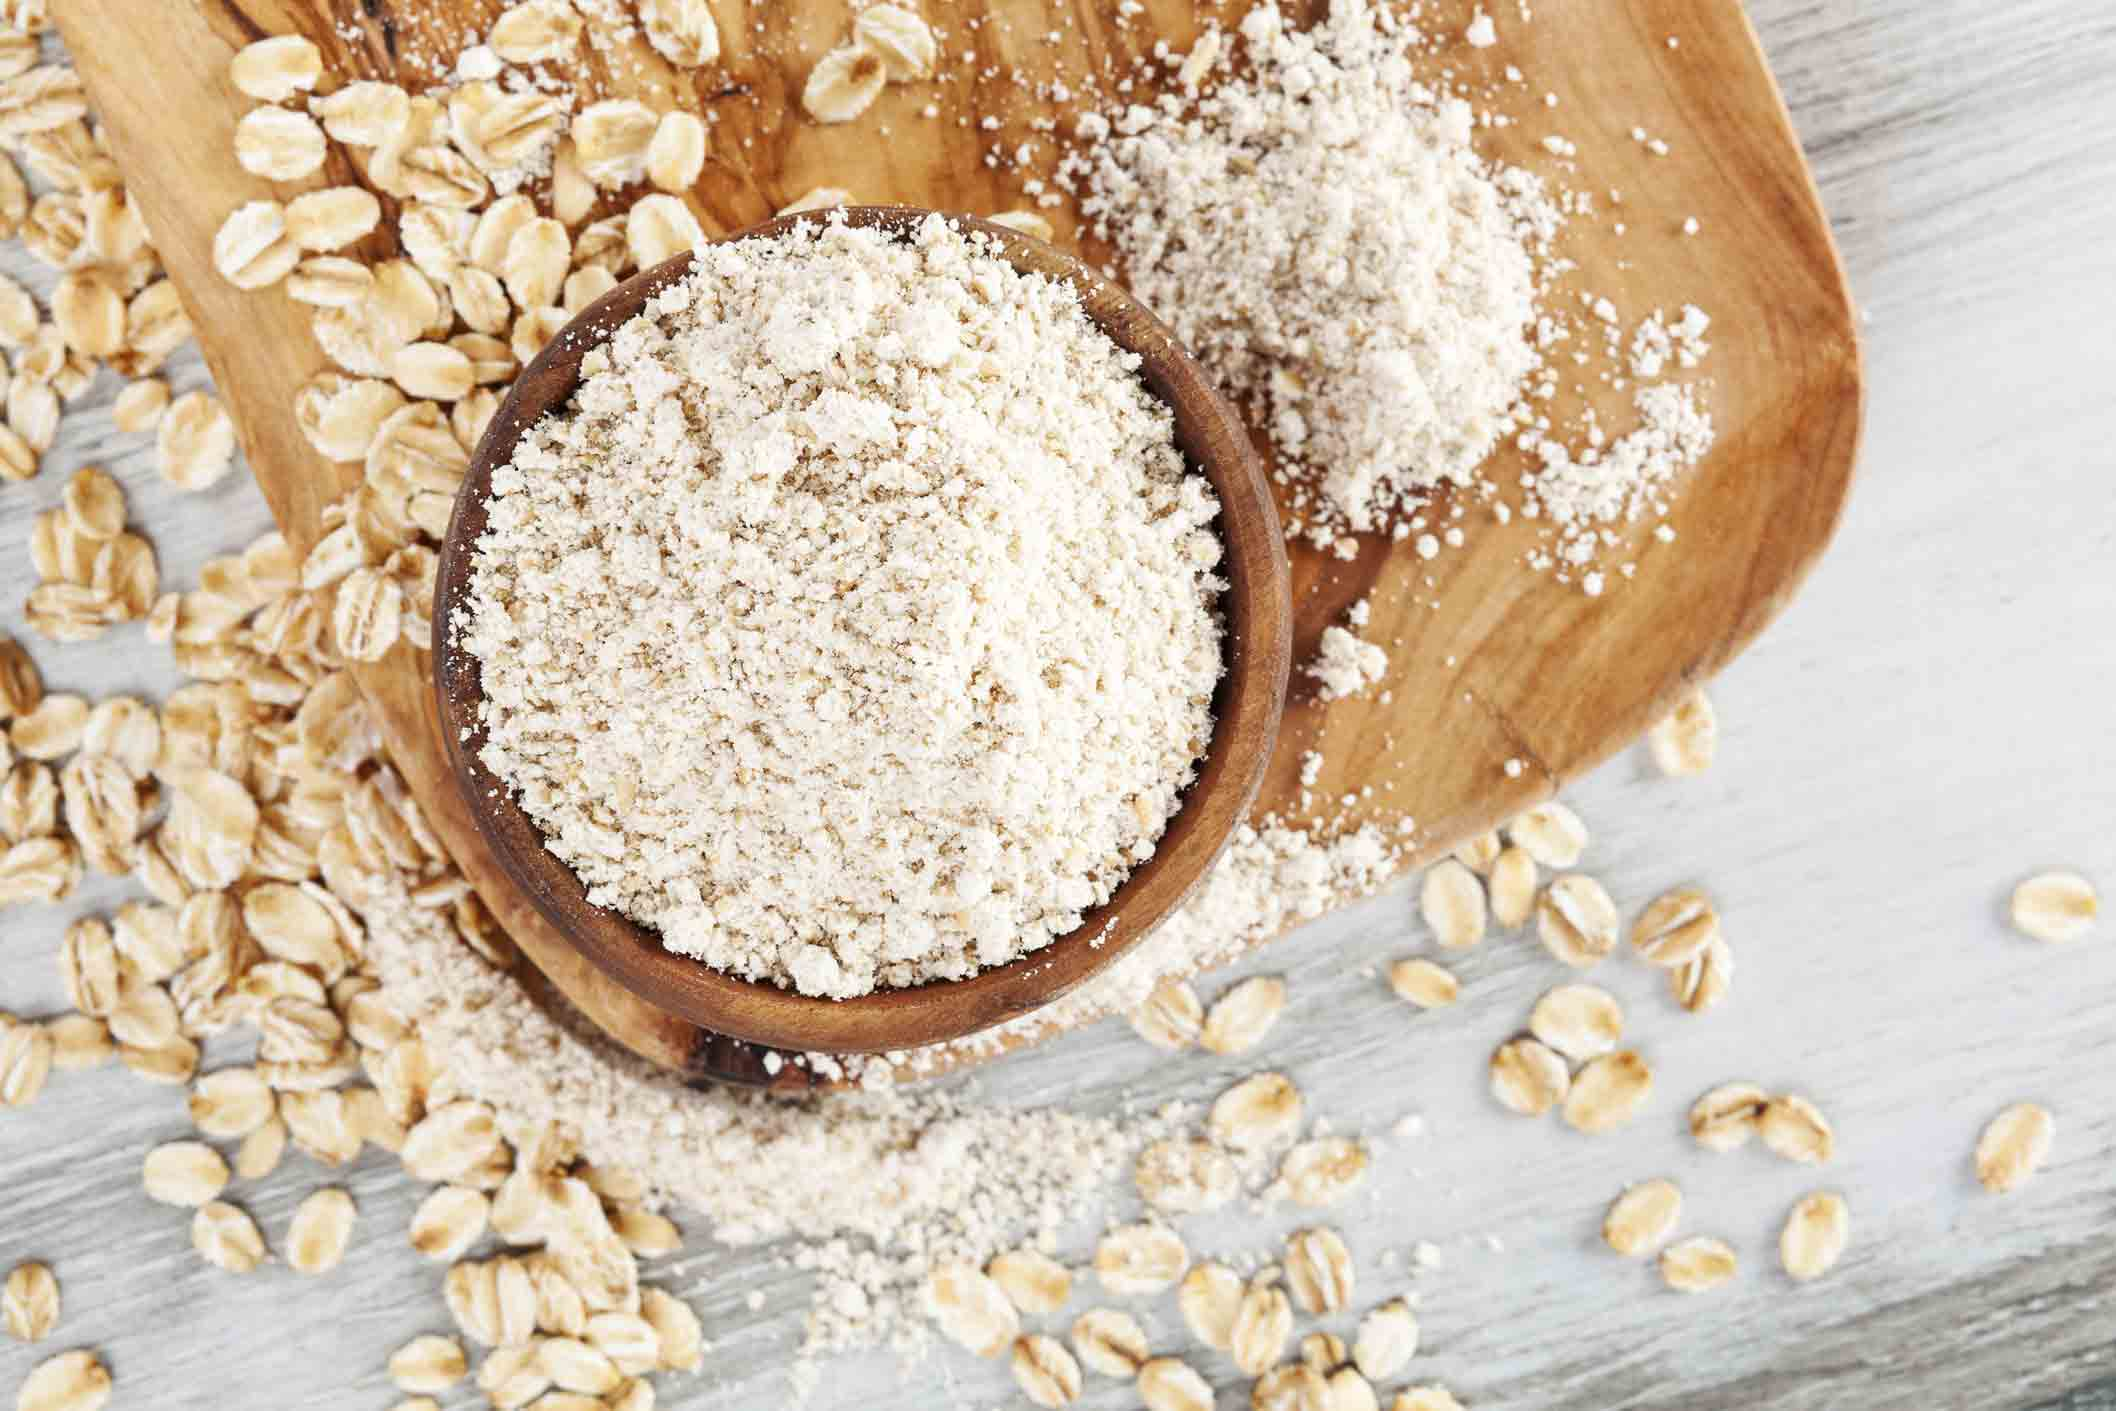 White oat flour and oats